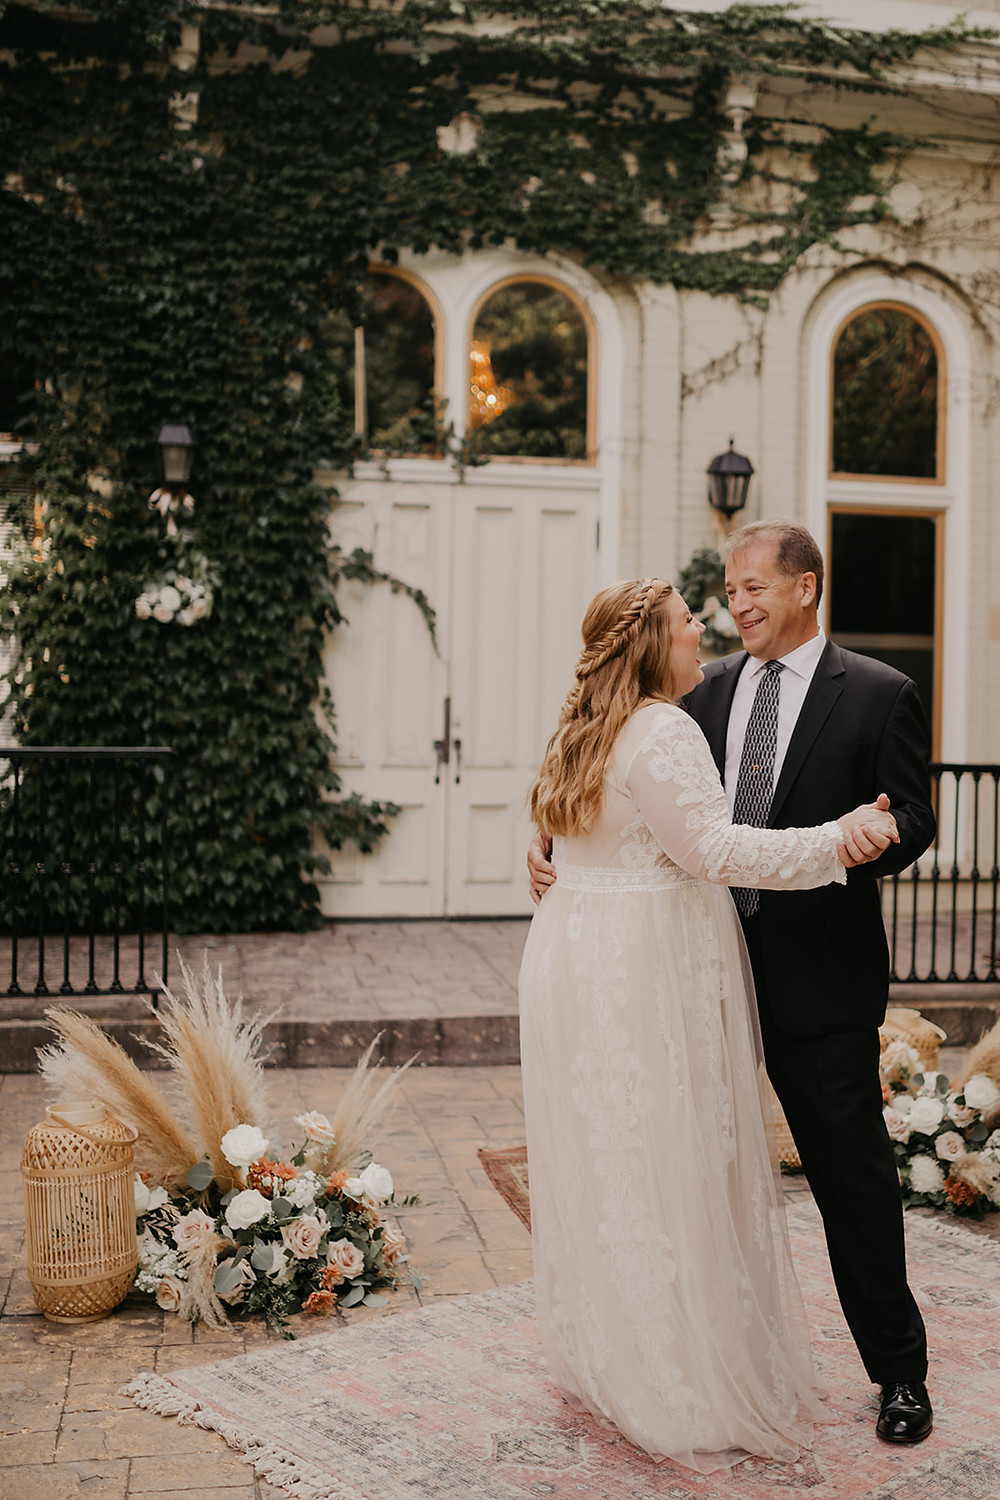 First dance between father and daughter shows the joy and happiness of the day.